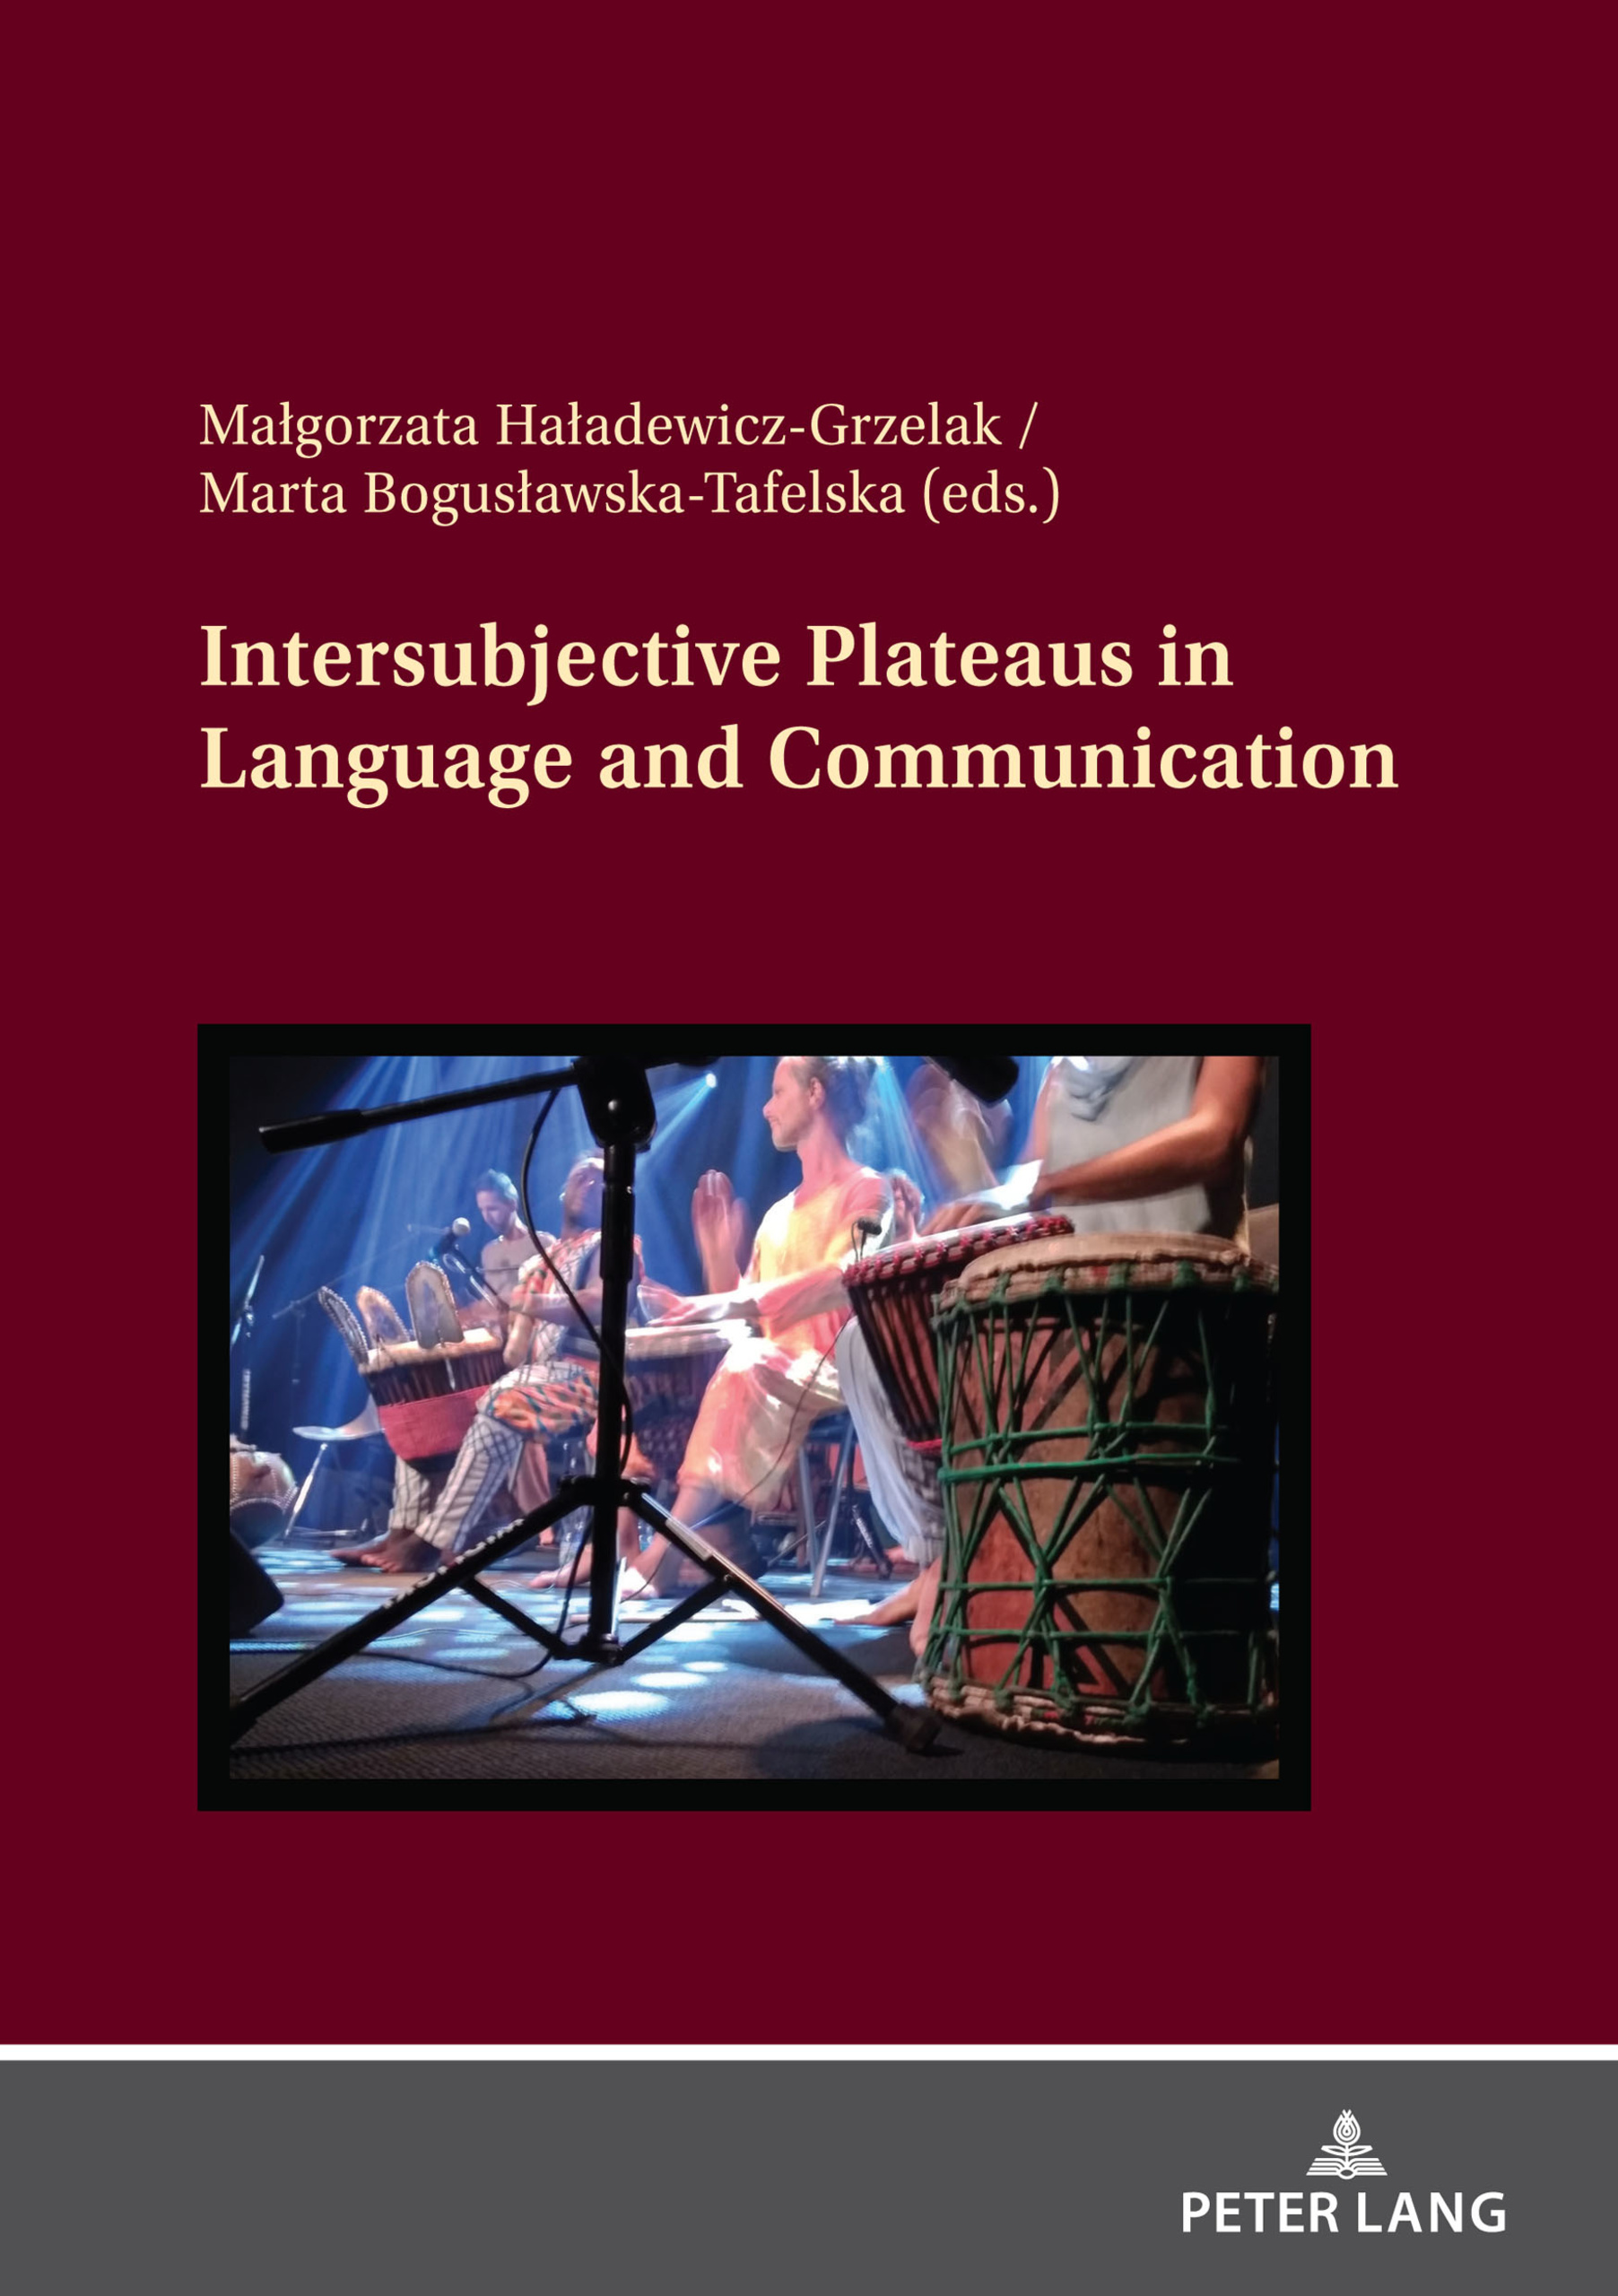 Title: Intersubjective Plateaus in Language and Communication